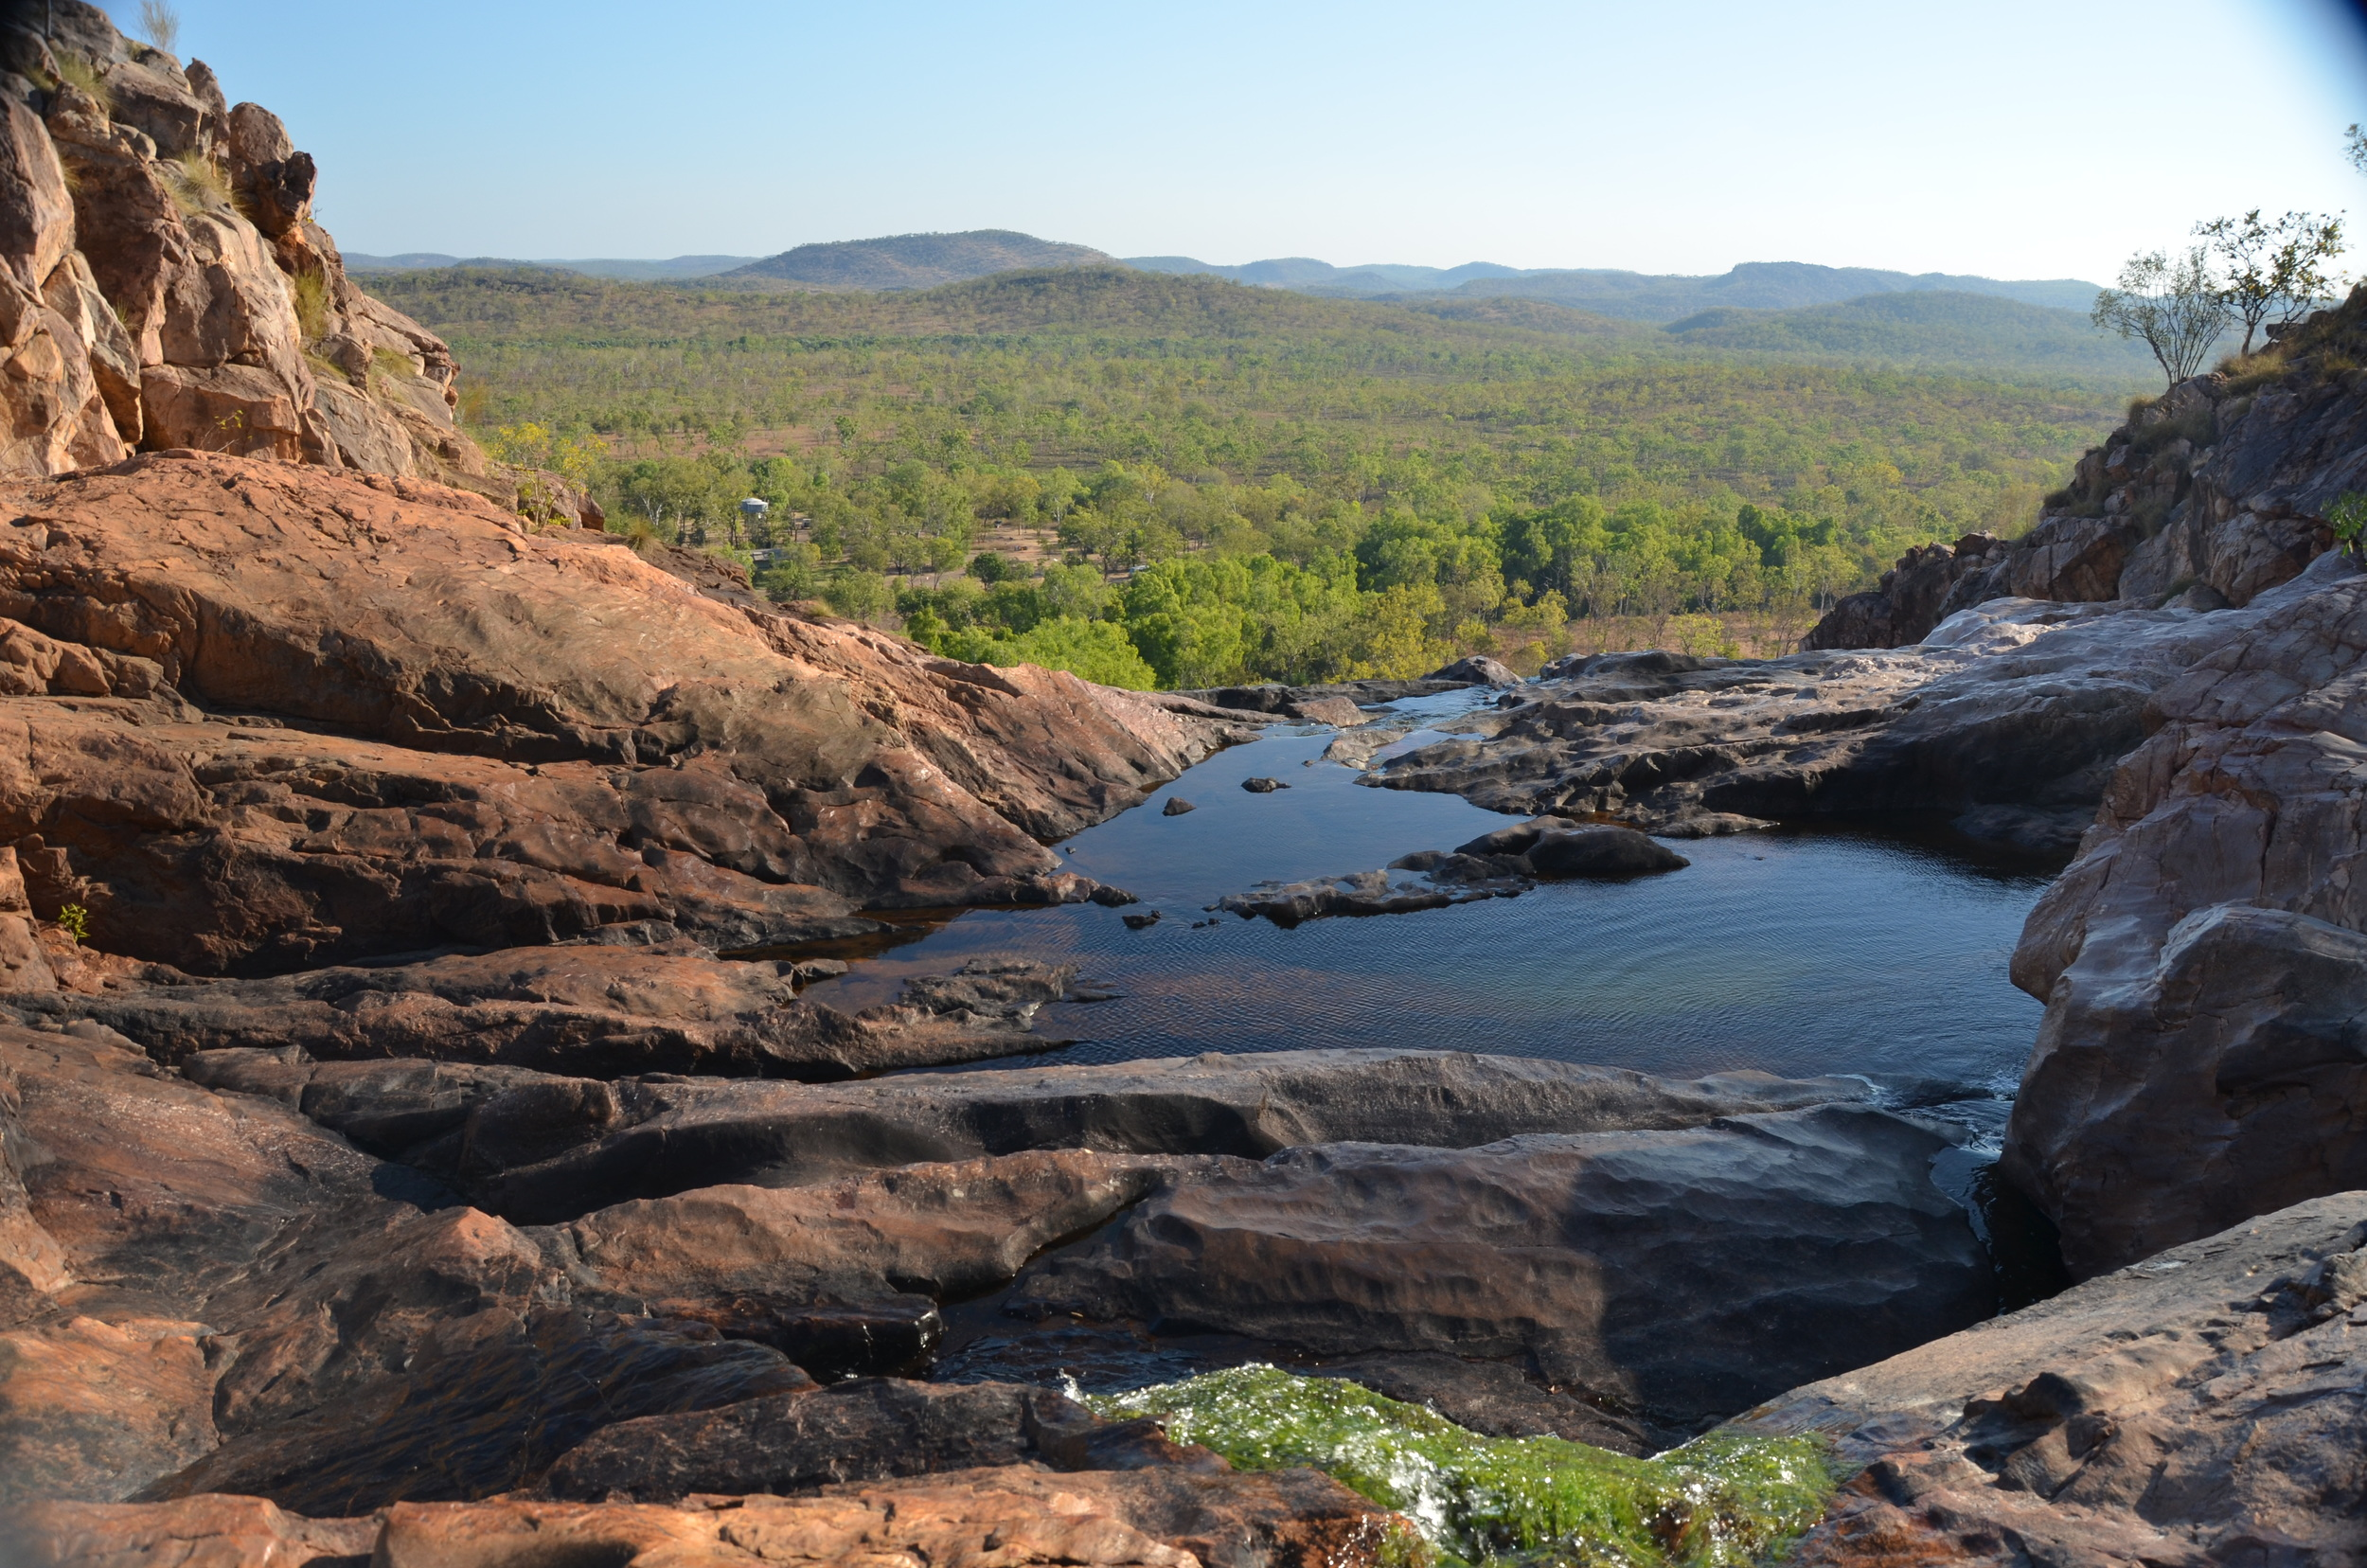 The view from the top ofGunlom Falls, Kakadu.